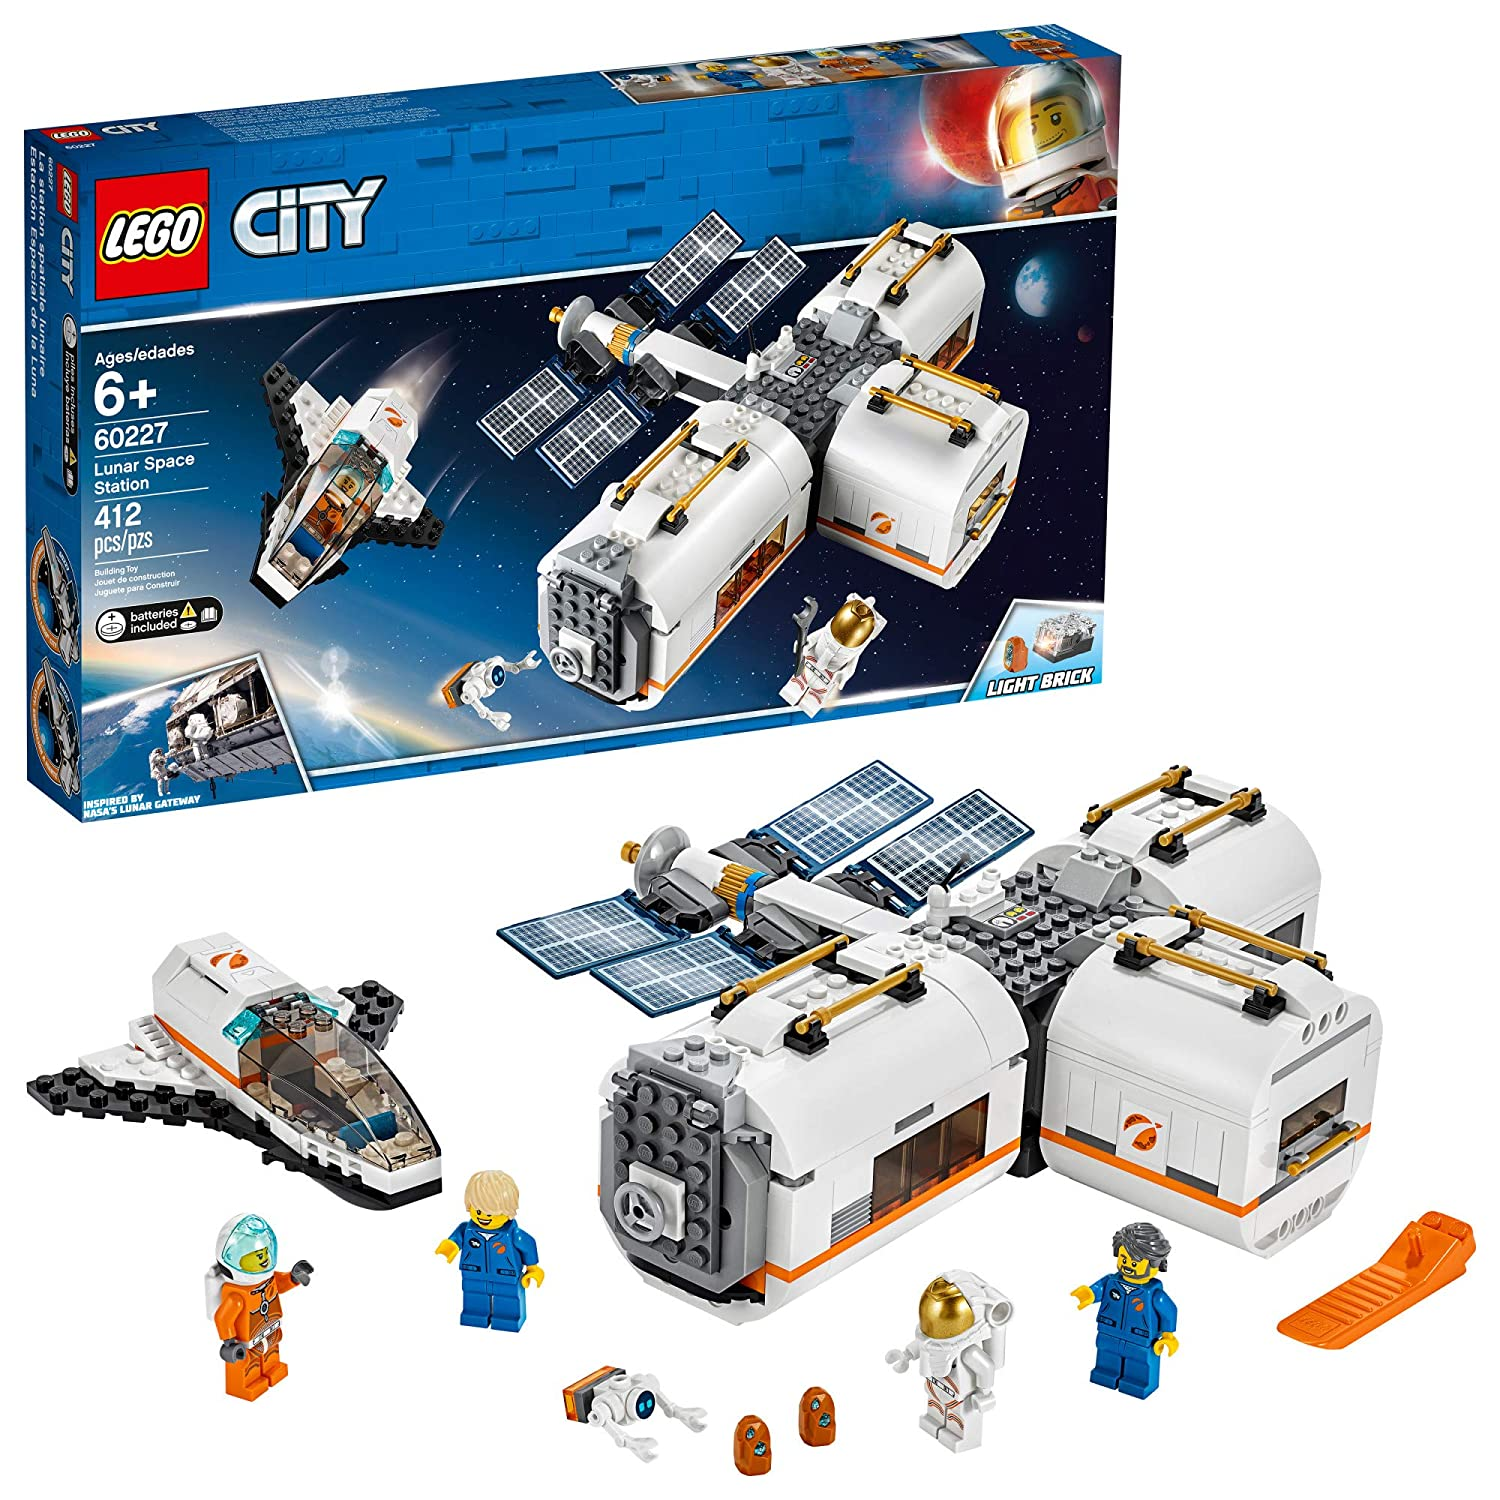 LEGO City Space Lunar Space Station 60227 Space Station Building Set with Toy Shuttle, Detachable Satellite and Astronaut Minifigures, Popular Space